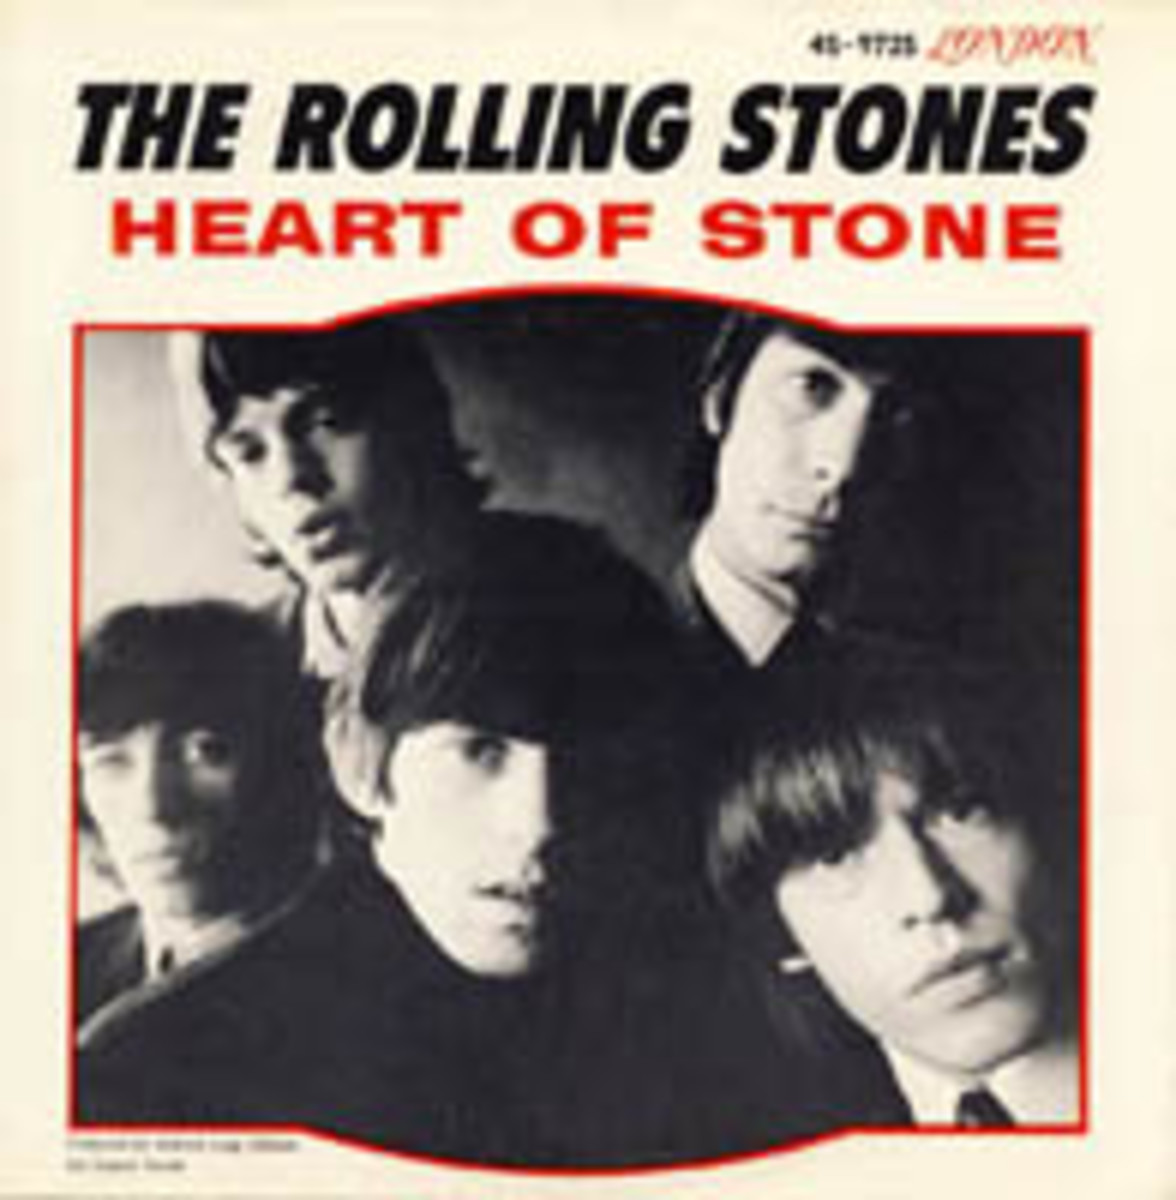 Rolling Stones Heart of Stone Picture Sleeve